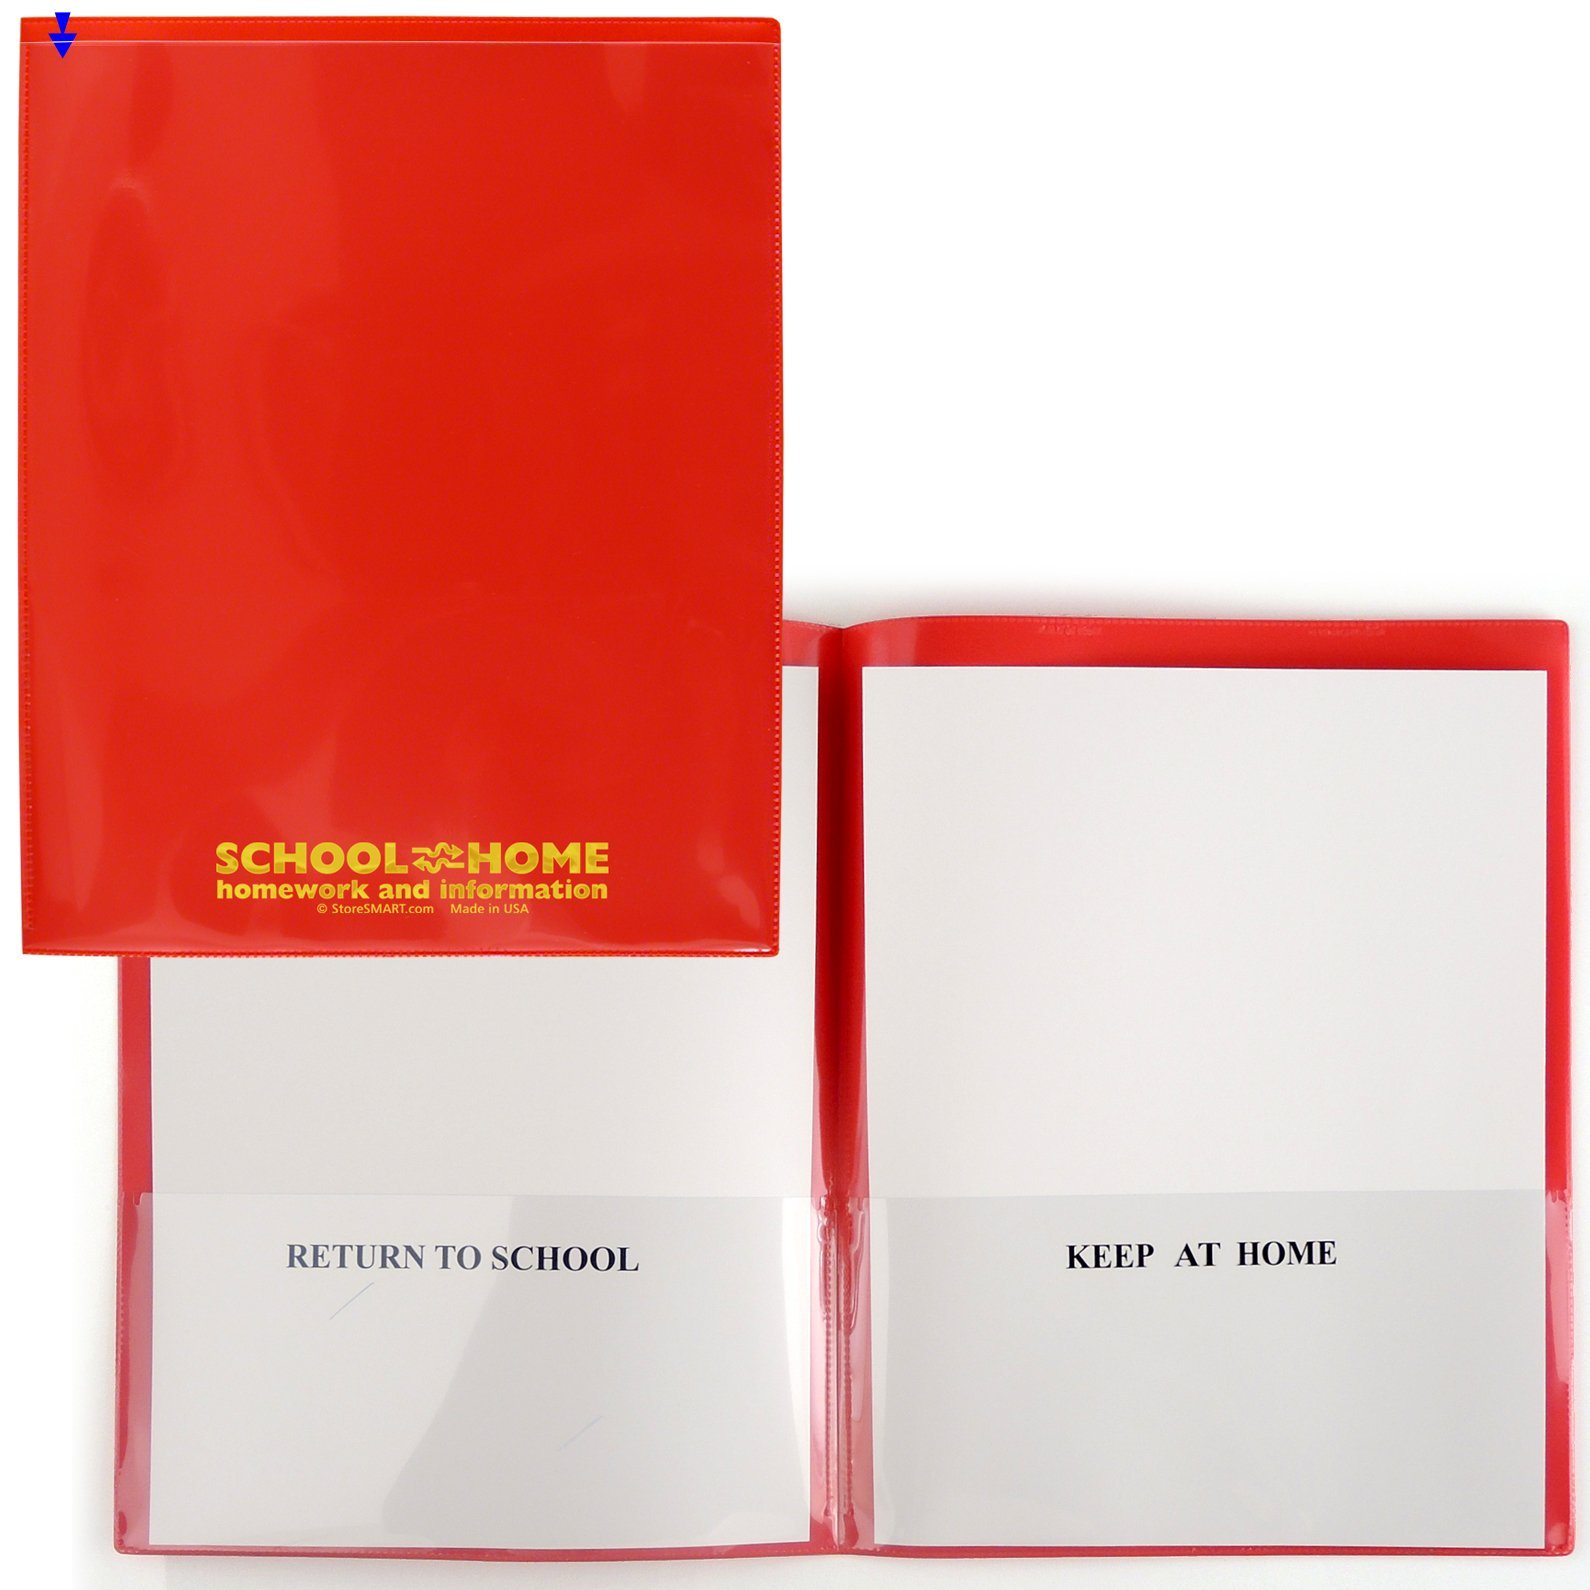 StoreSMART - School / Home Folders - Red - 50-Pack - Archival Durable Plastic - Homework and Information - SH900SV-R50